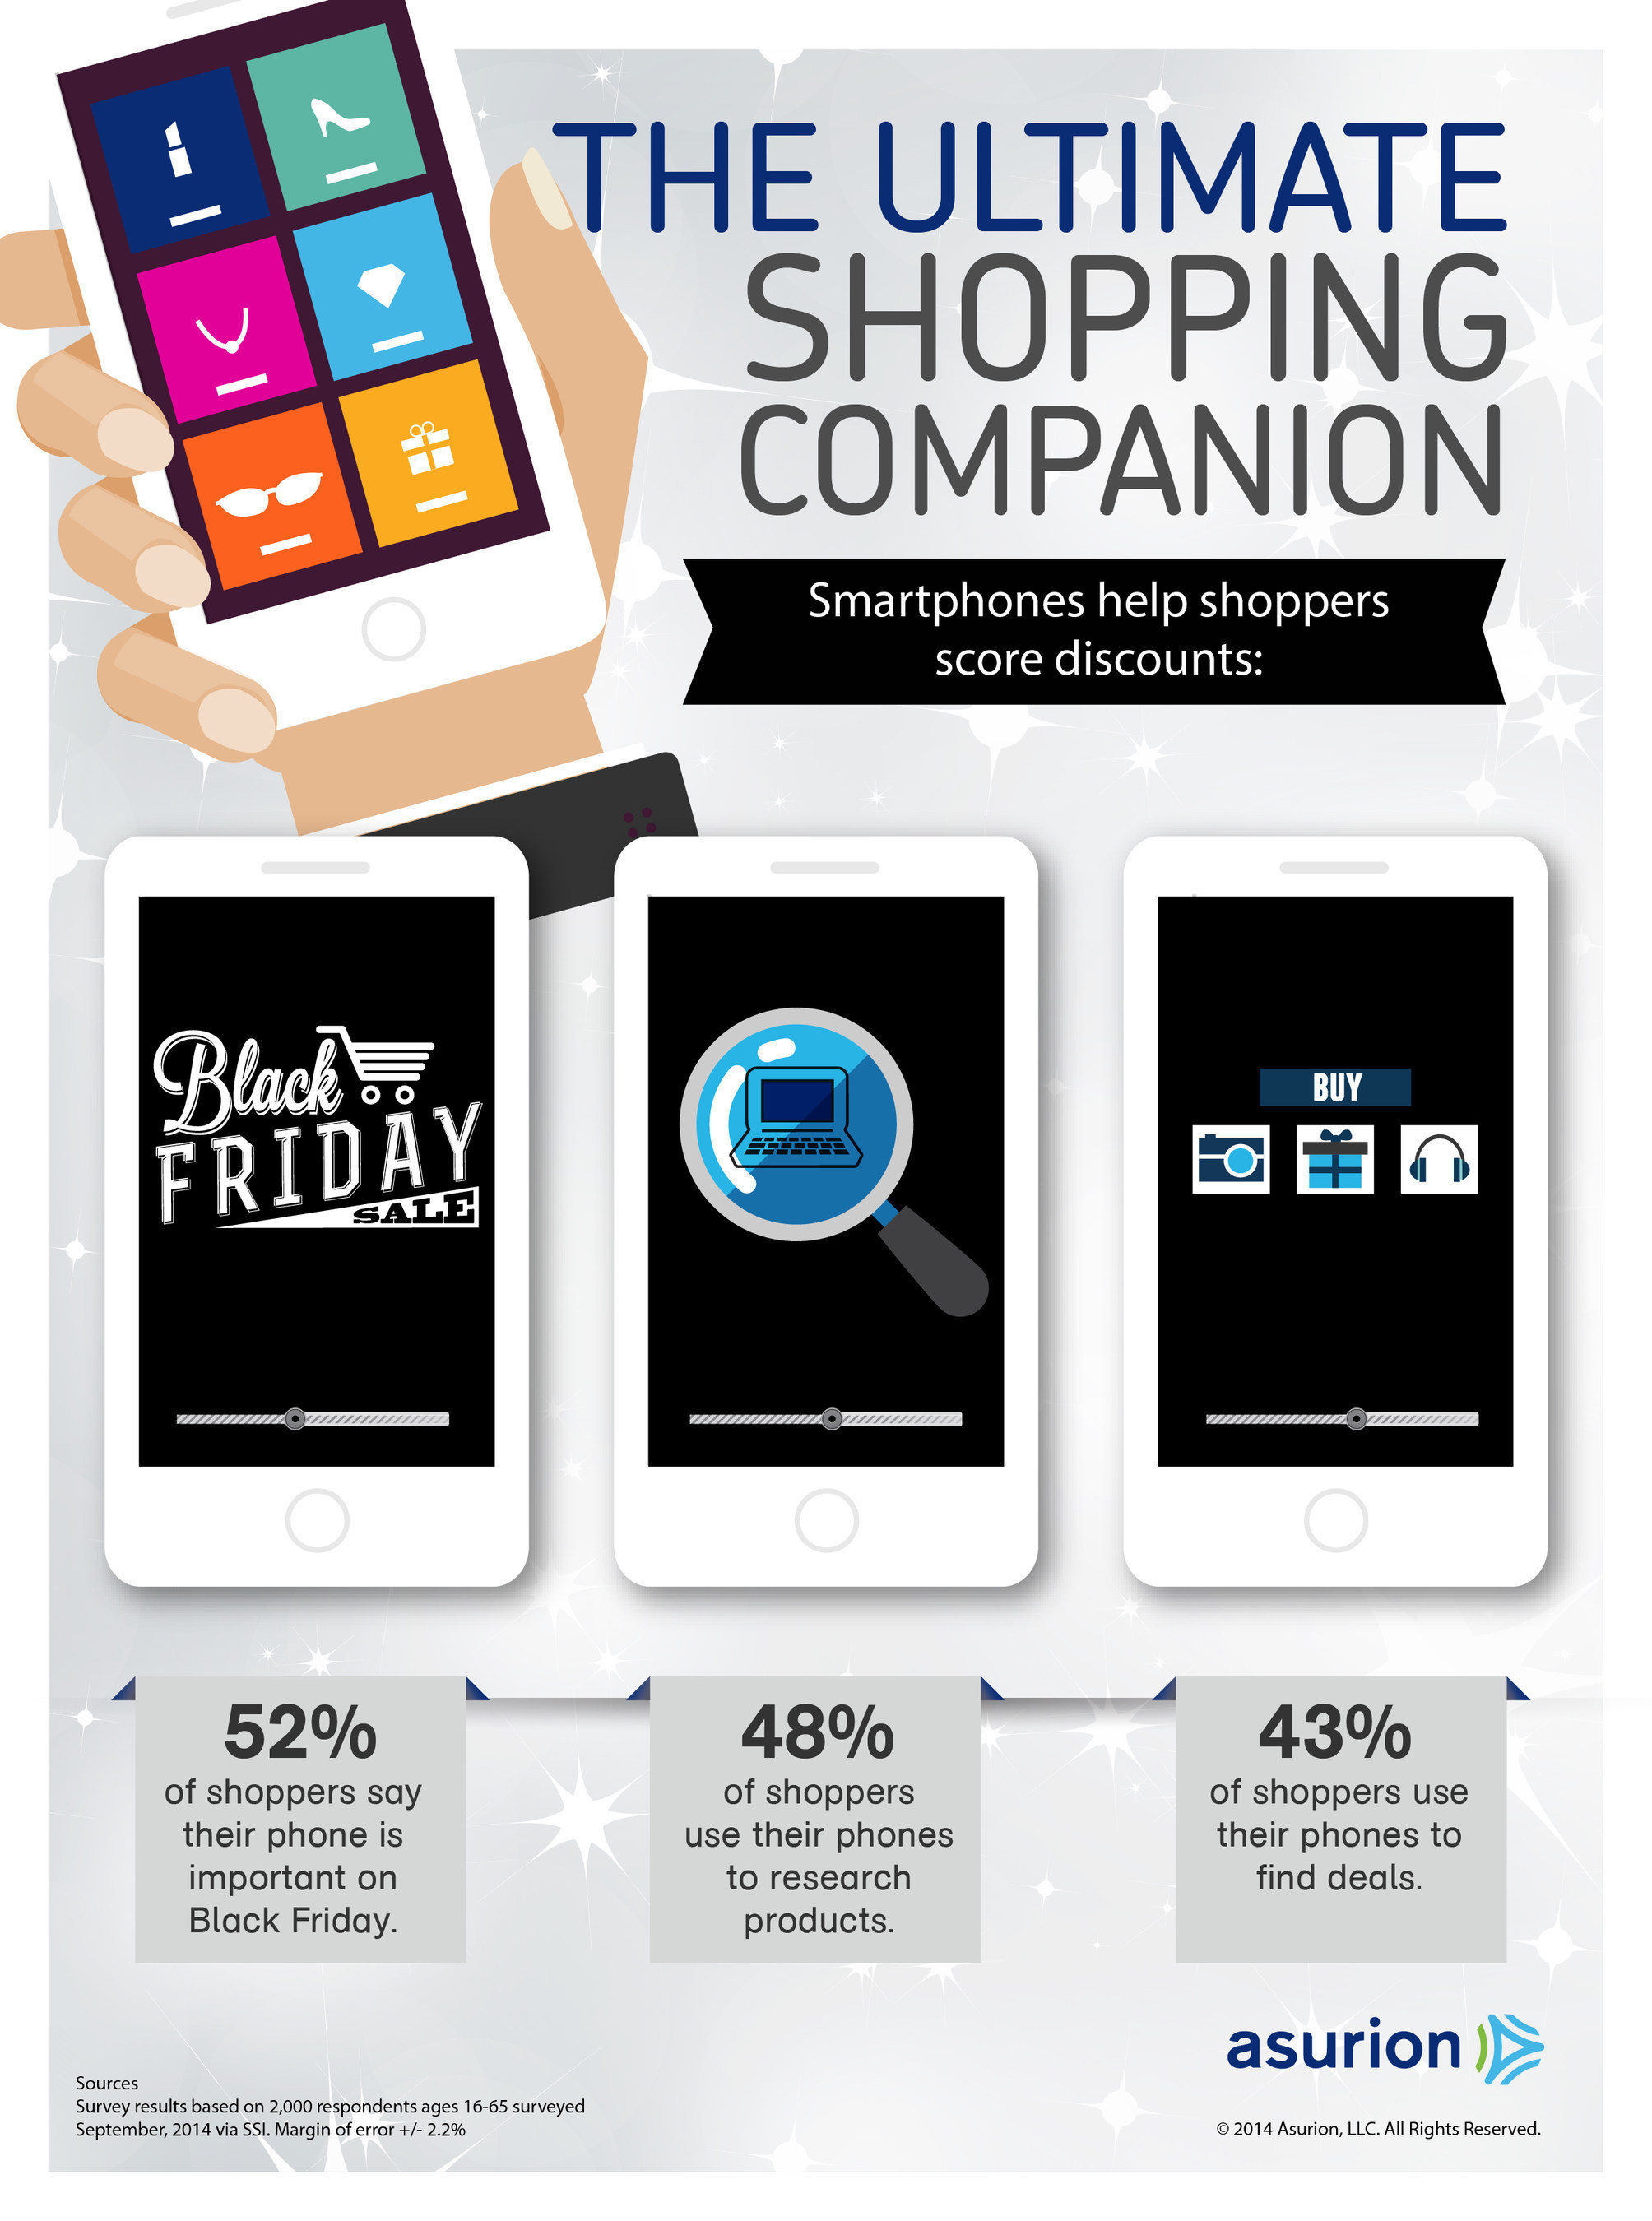 Black Friday shoppers this year will rely on their mobile phones to research products and find deals according ...